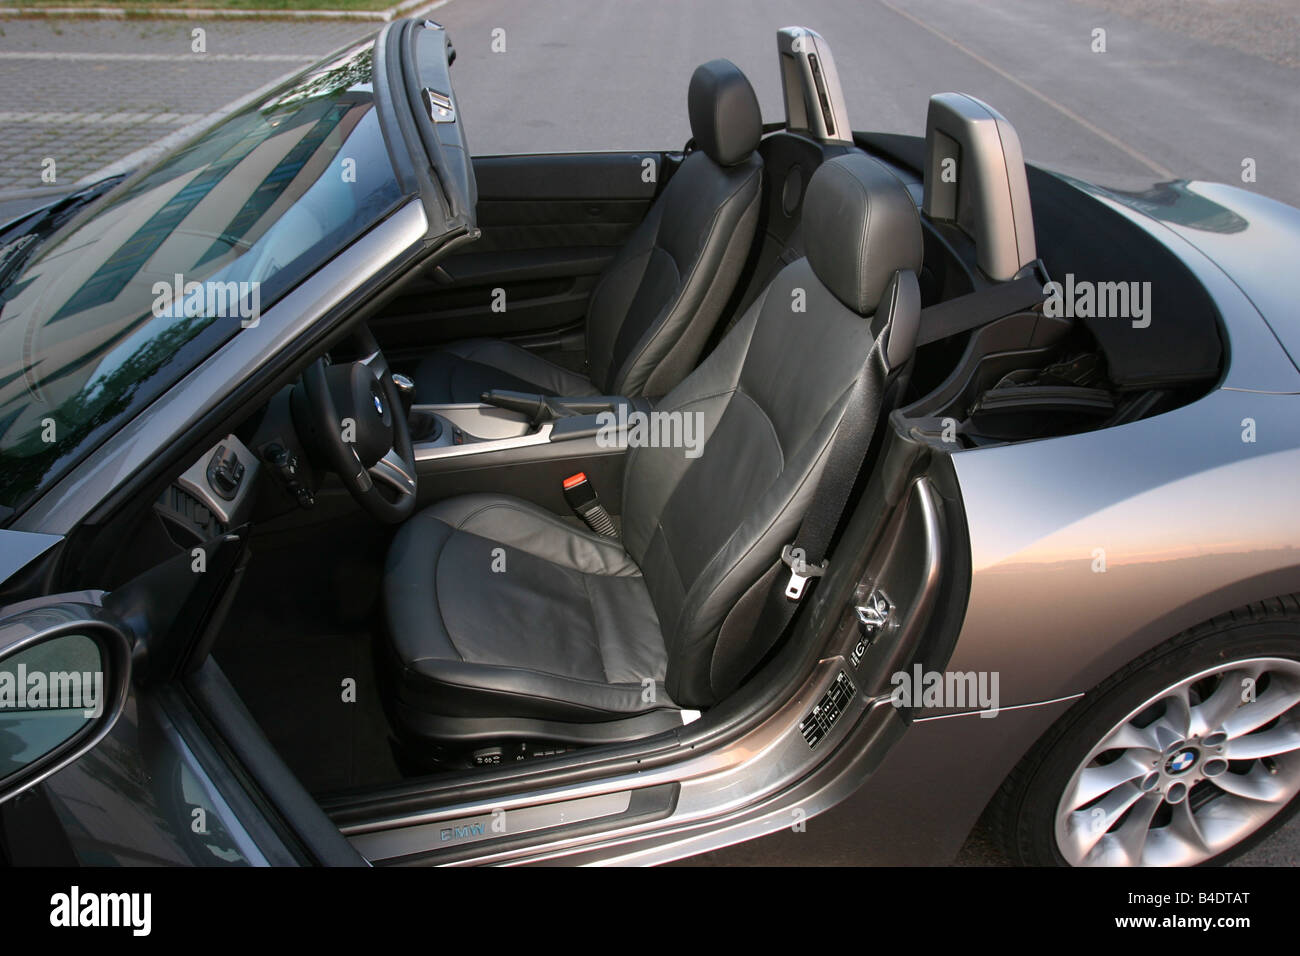 hight resolution of car bmw z4 3 0i roadster convertible 231 ps h chstgeschwindigkeit 250 km h model year 2003 silver anthracite interior vi